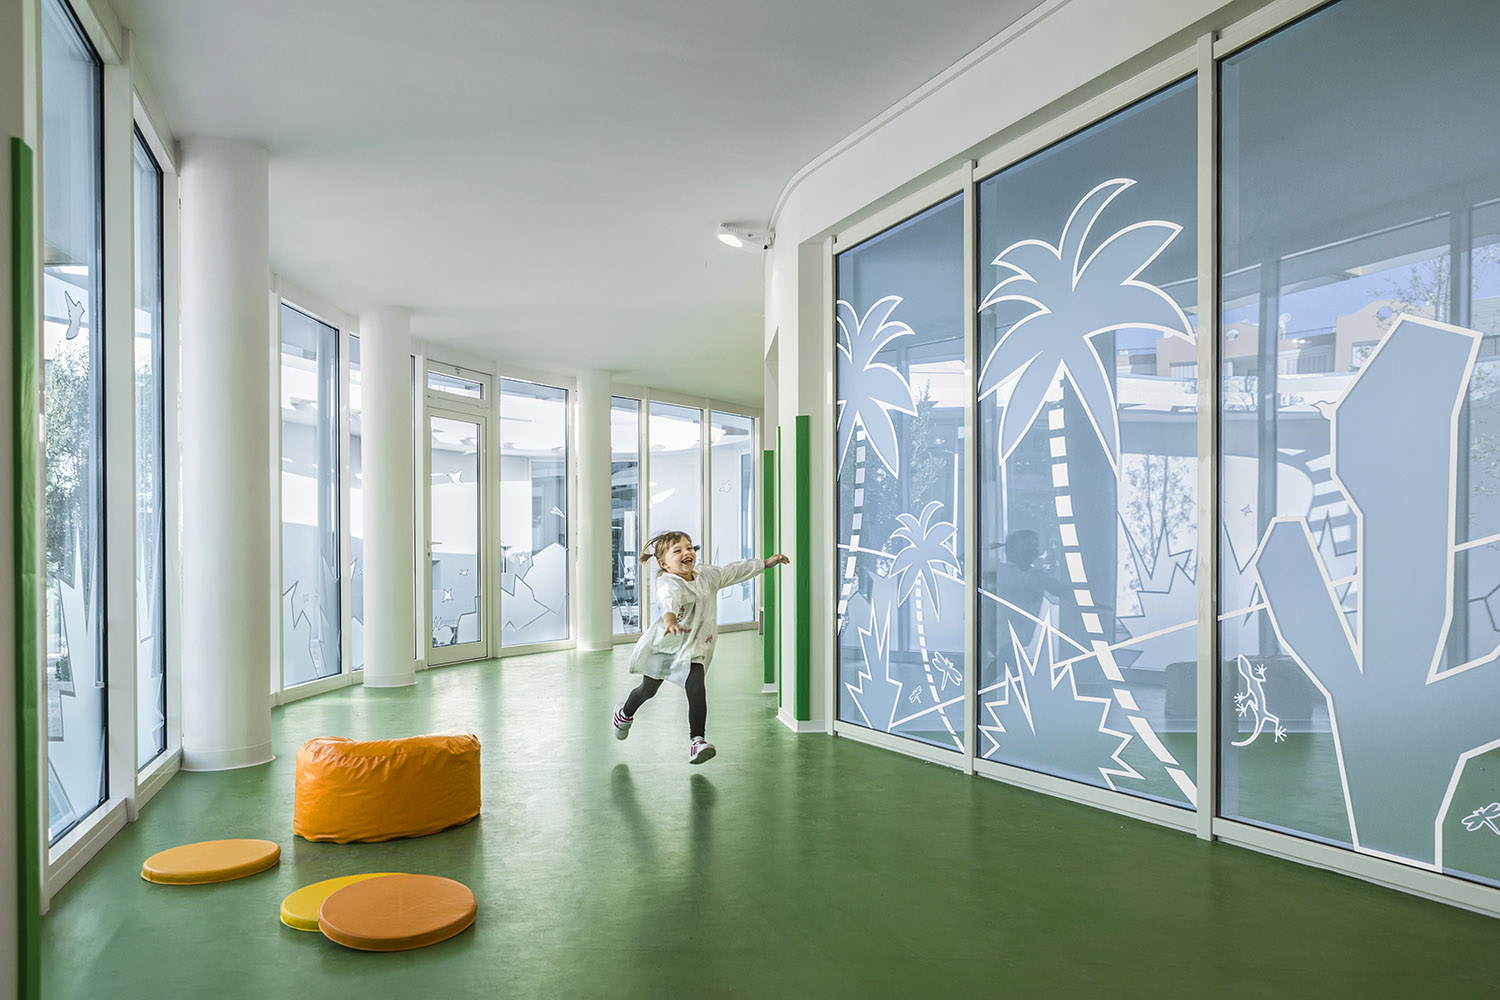 View of the corridor with safety artistic decoration on the glass facades  photo by Alessandro Peralta